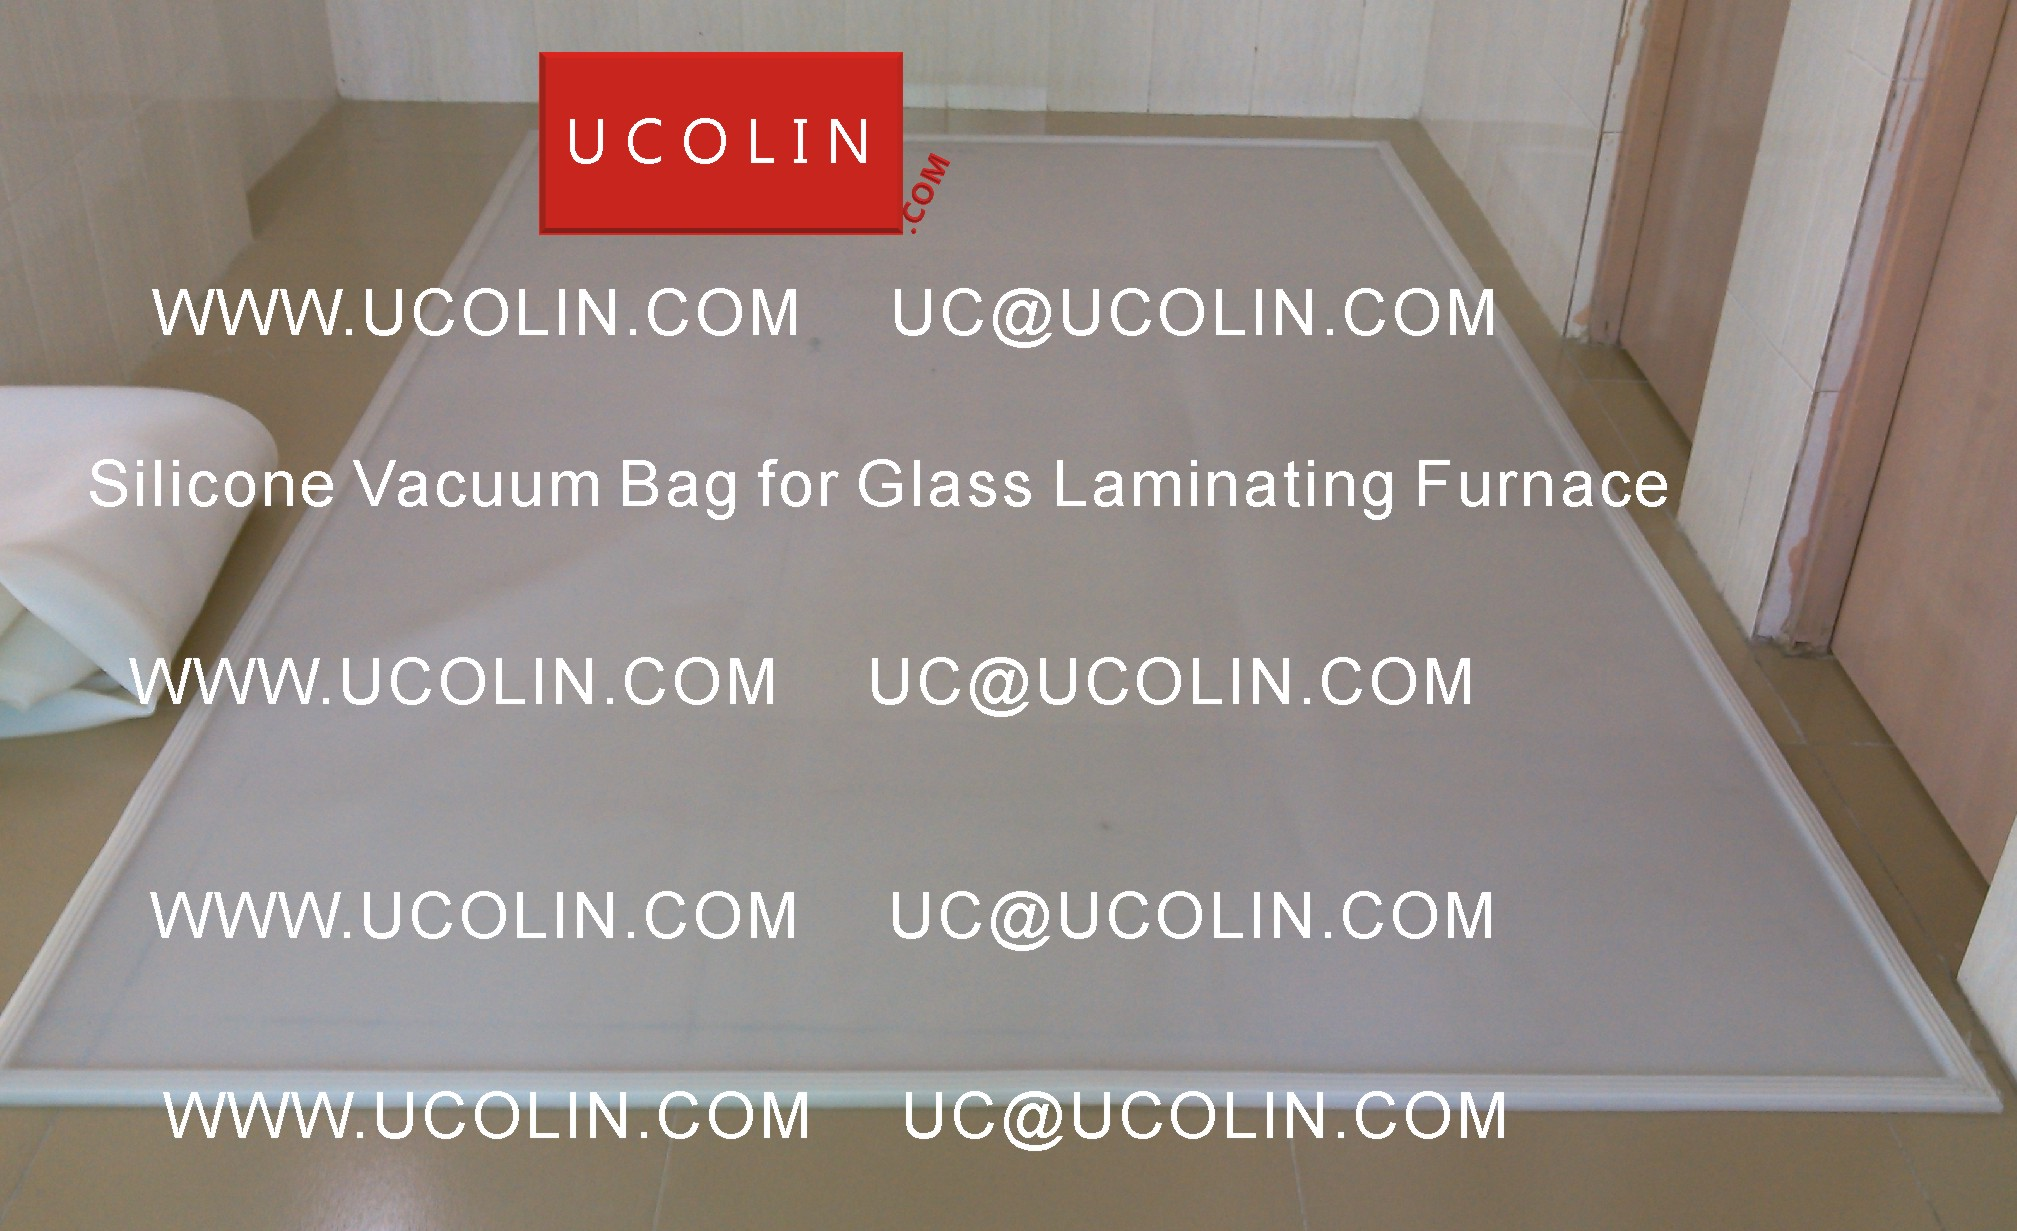 07 Silicone Vacuum Bag for Safety Glass Laminating Furnace